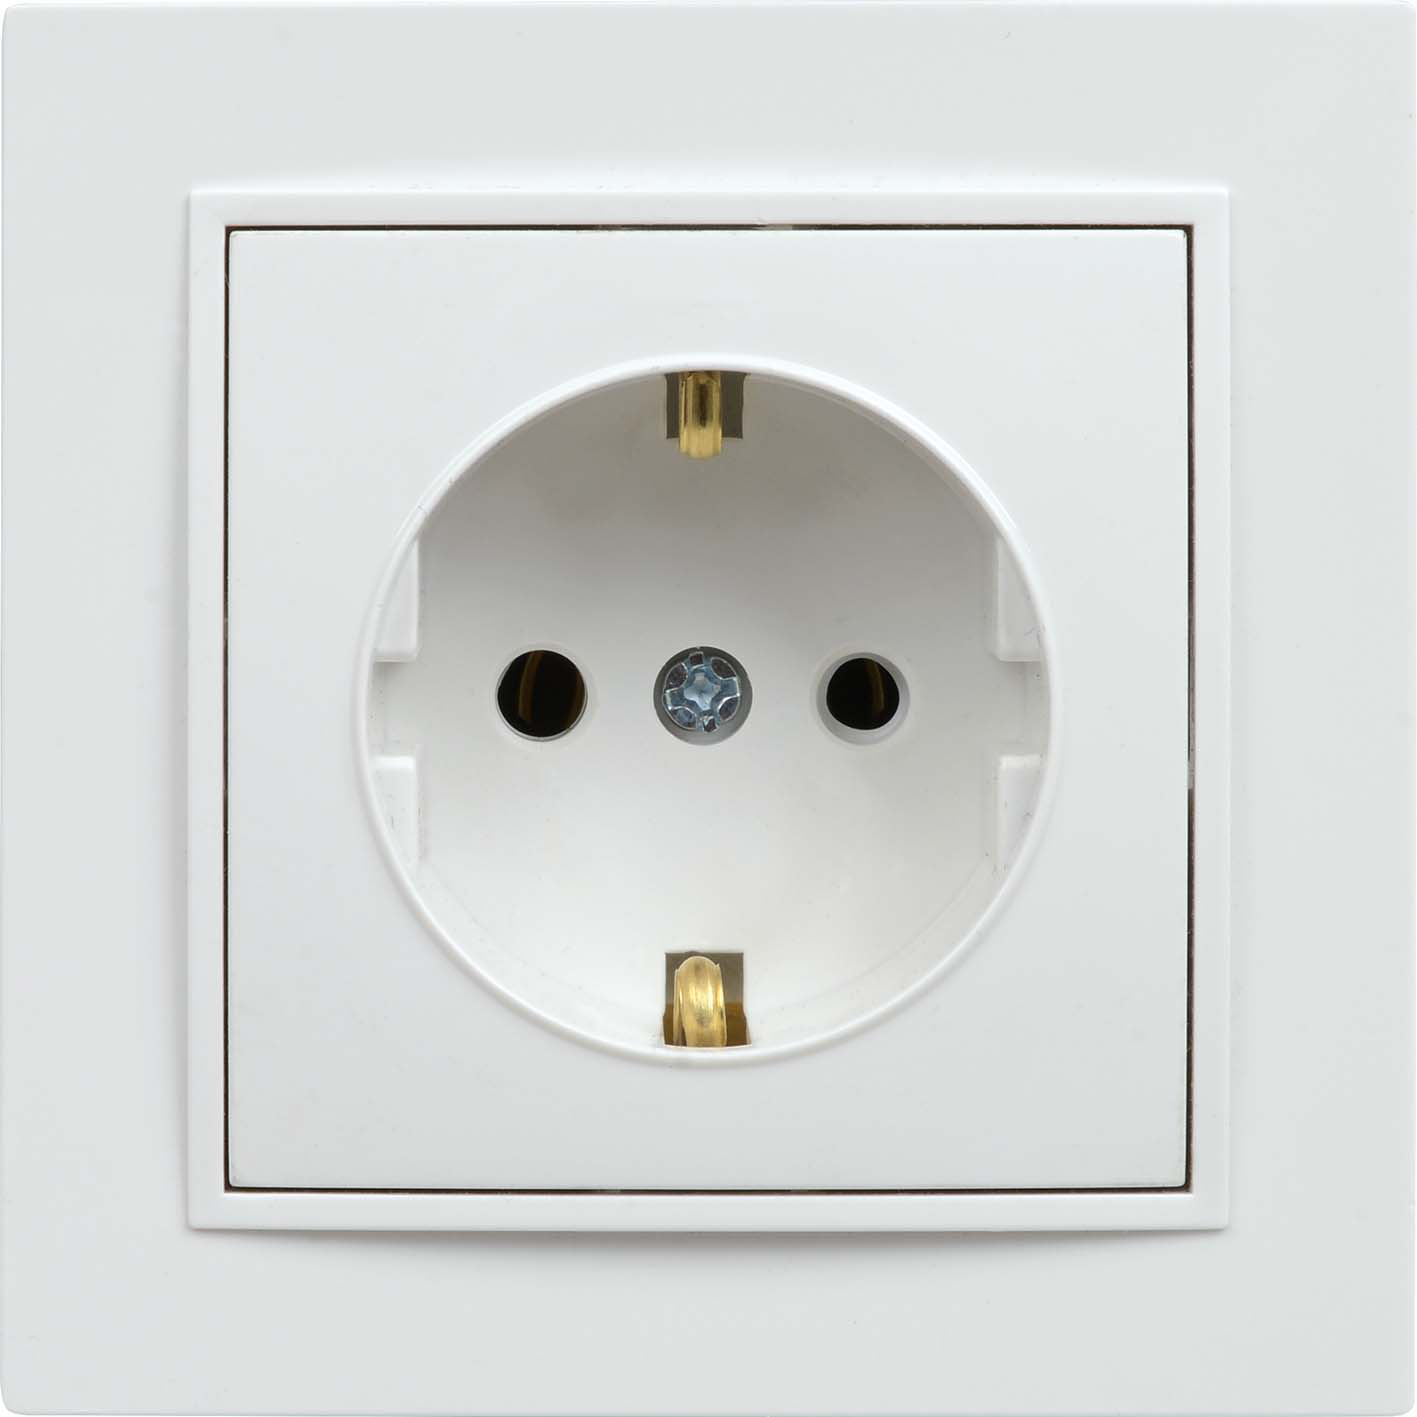 70 600 046	-	Socket Outlet Earthed